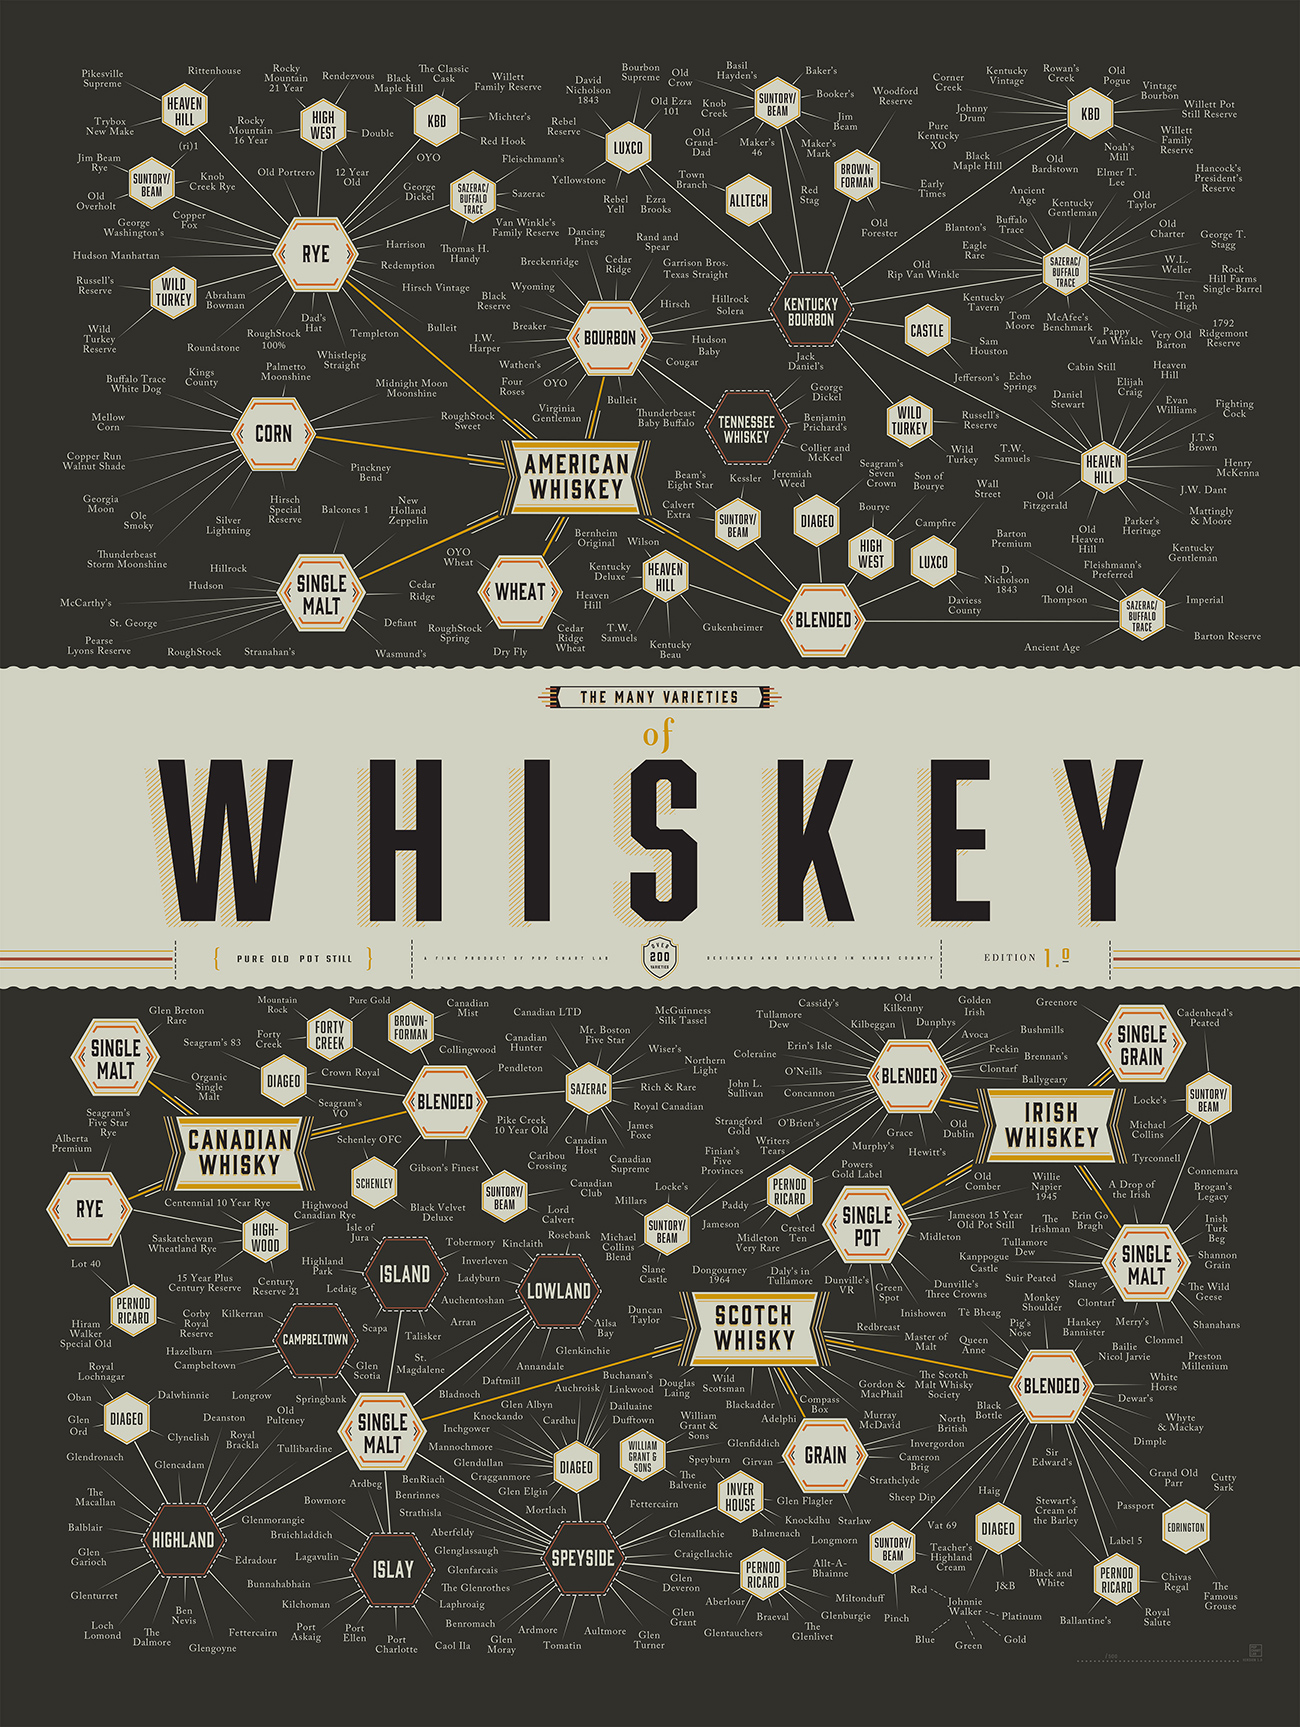 the-many-varieties-of-whiskey_534857db77068